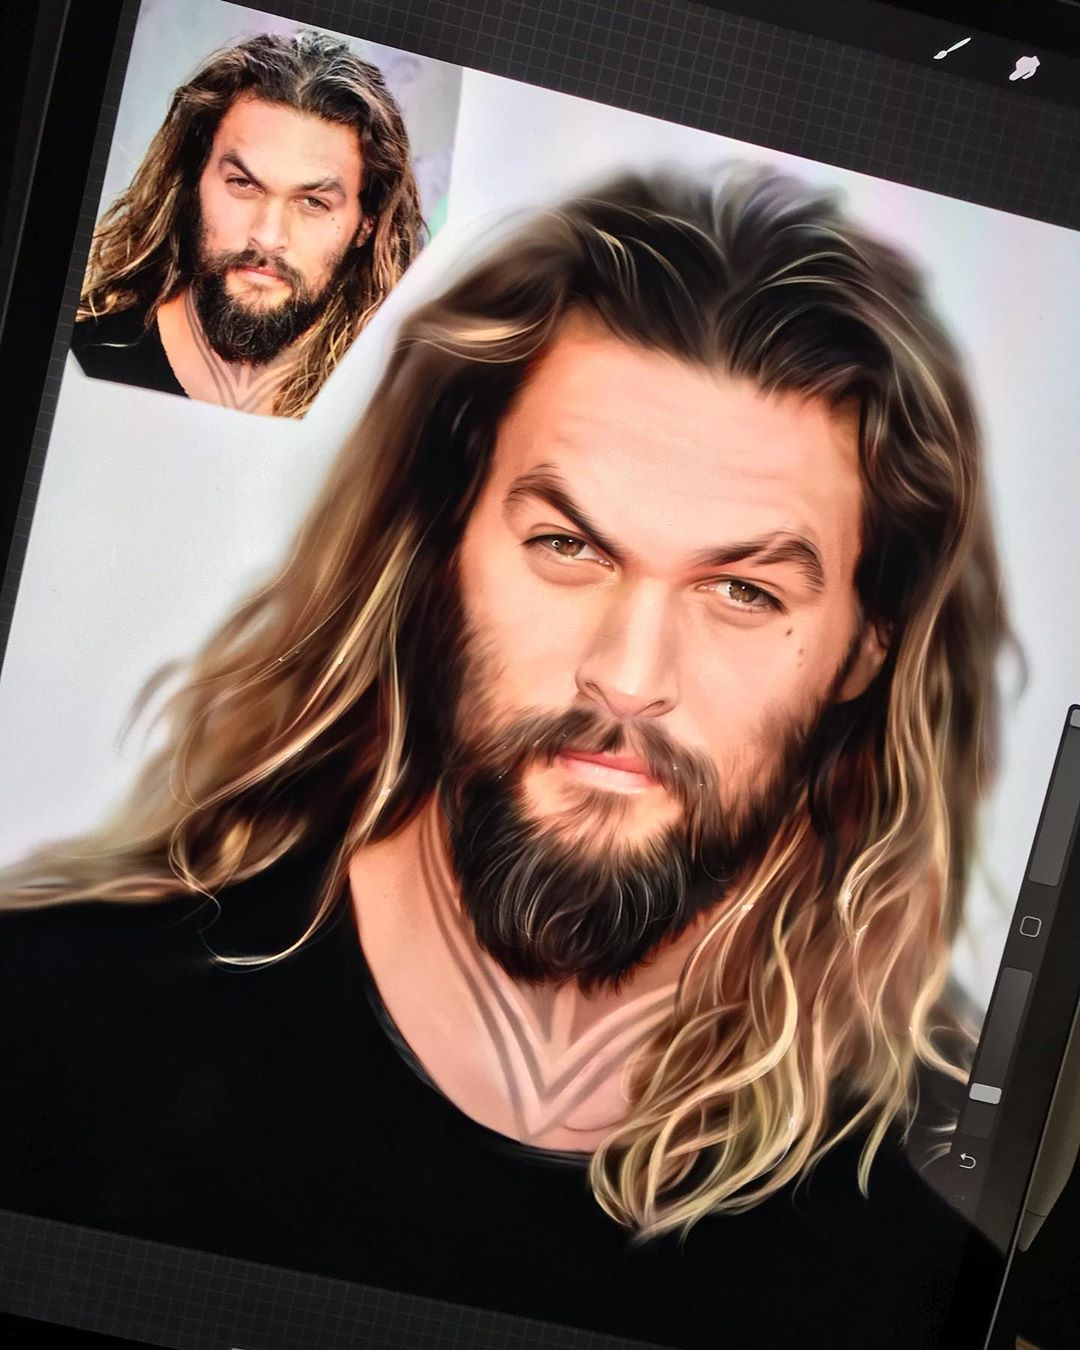 digital painting jason mamoa ylanast